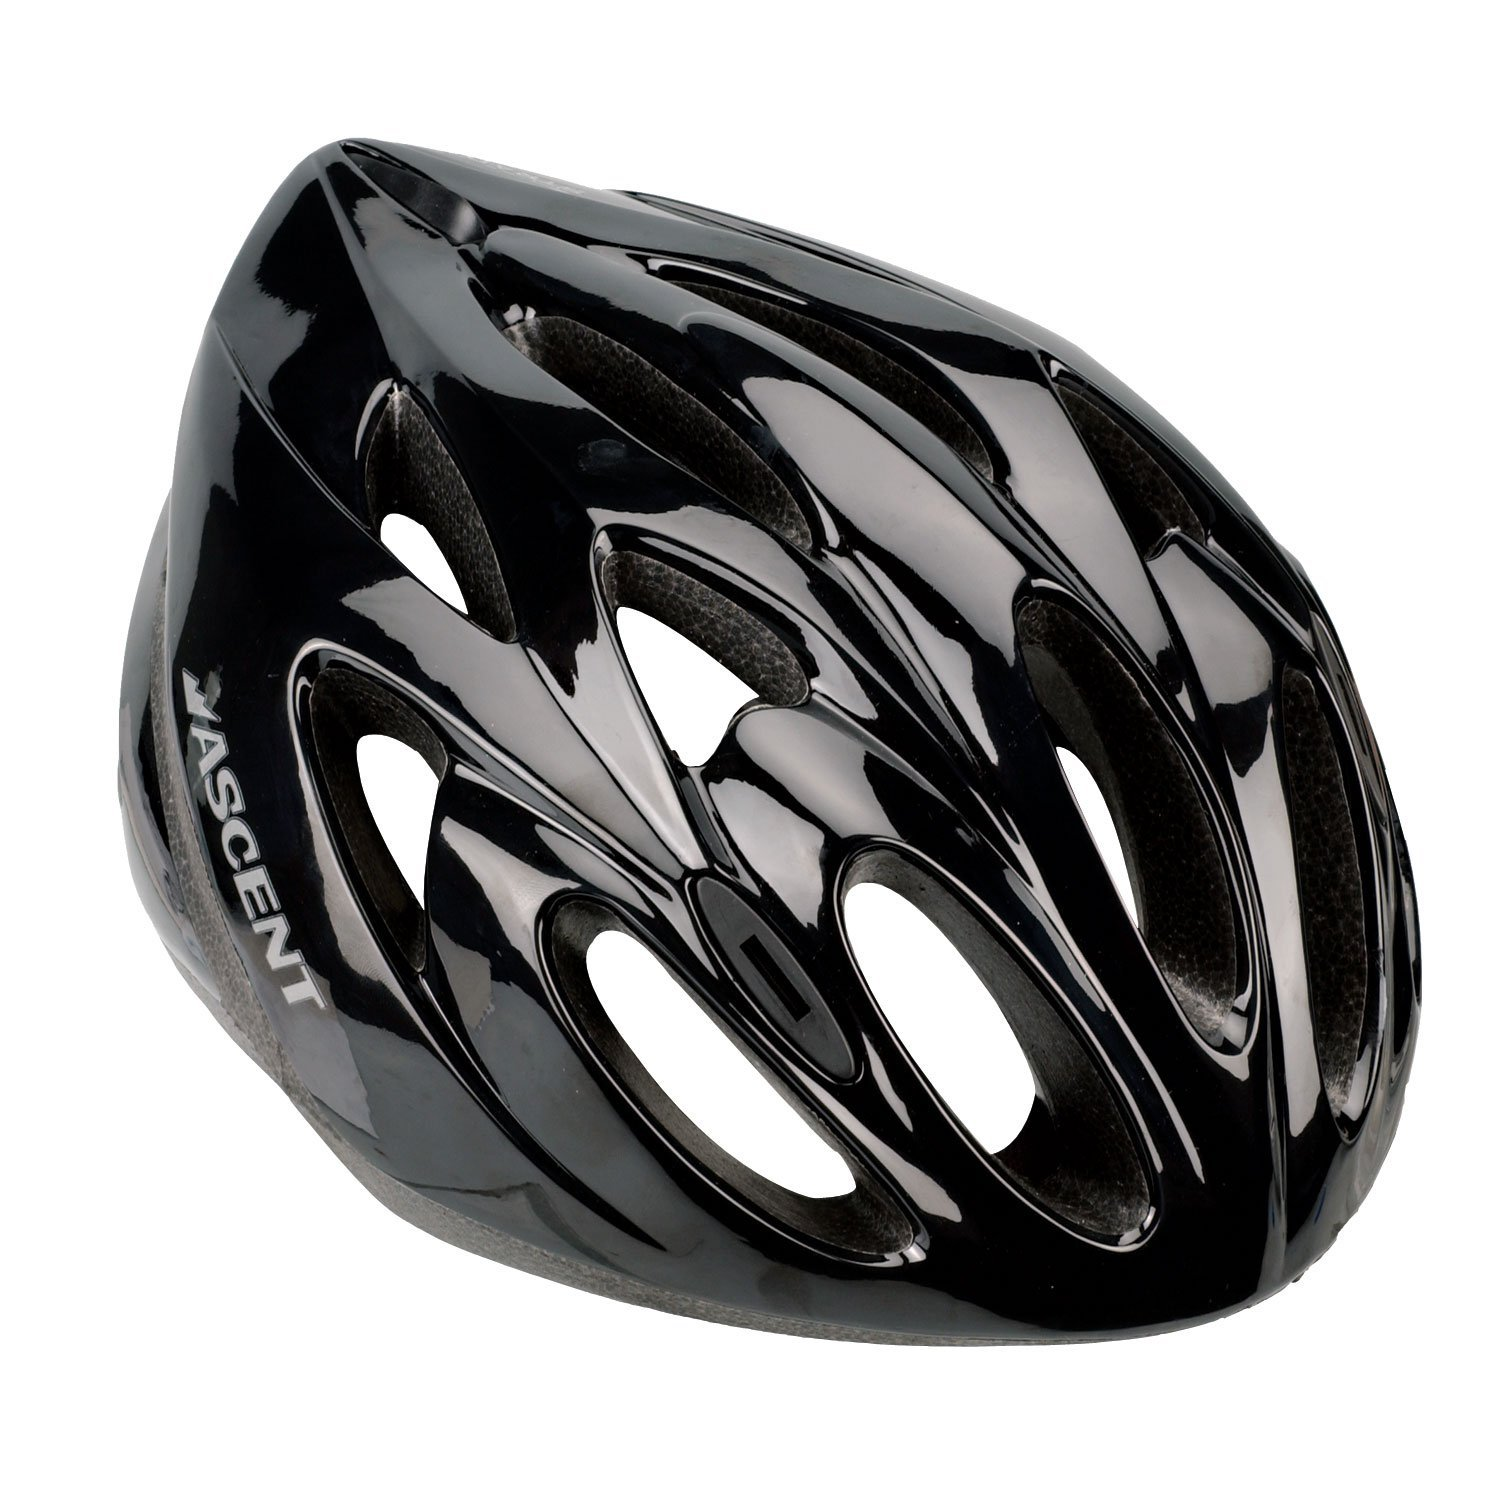 Ascent Bicycle Helmets